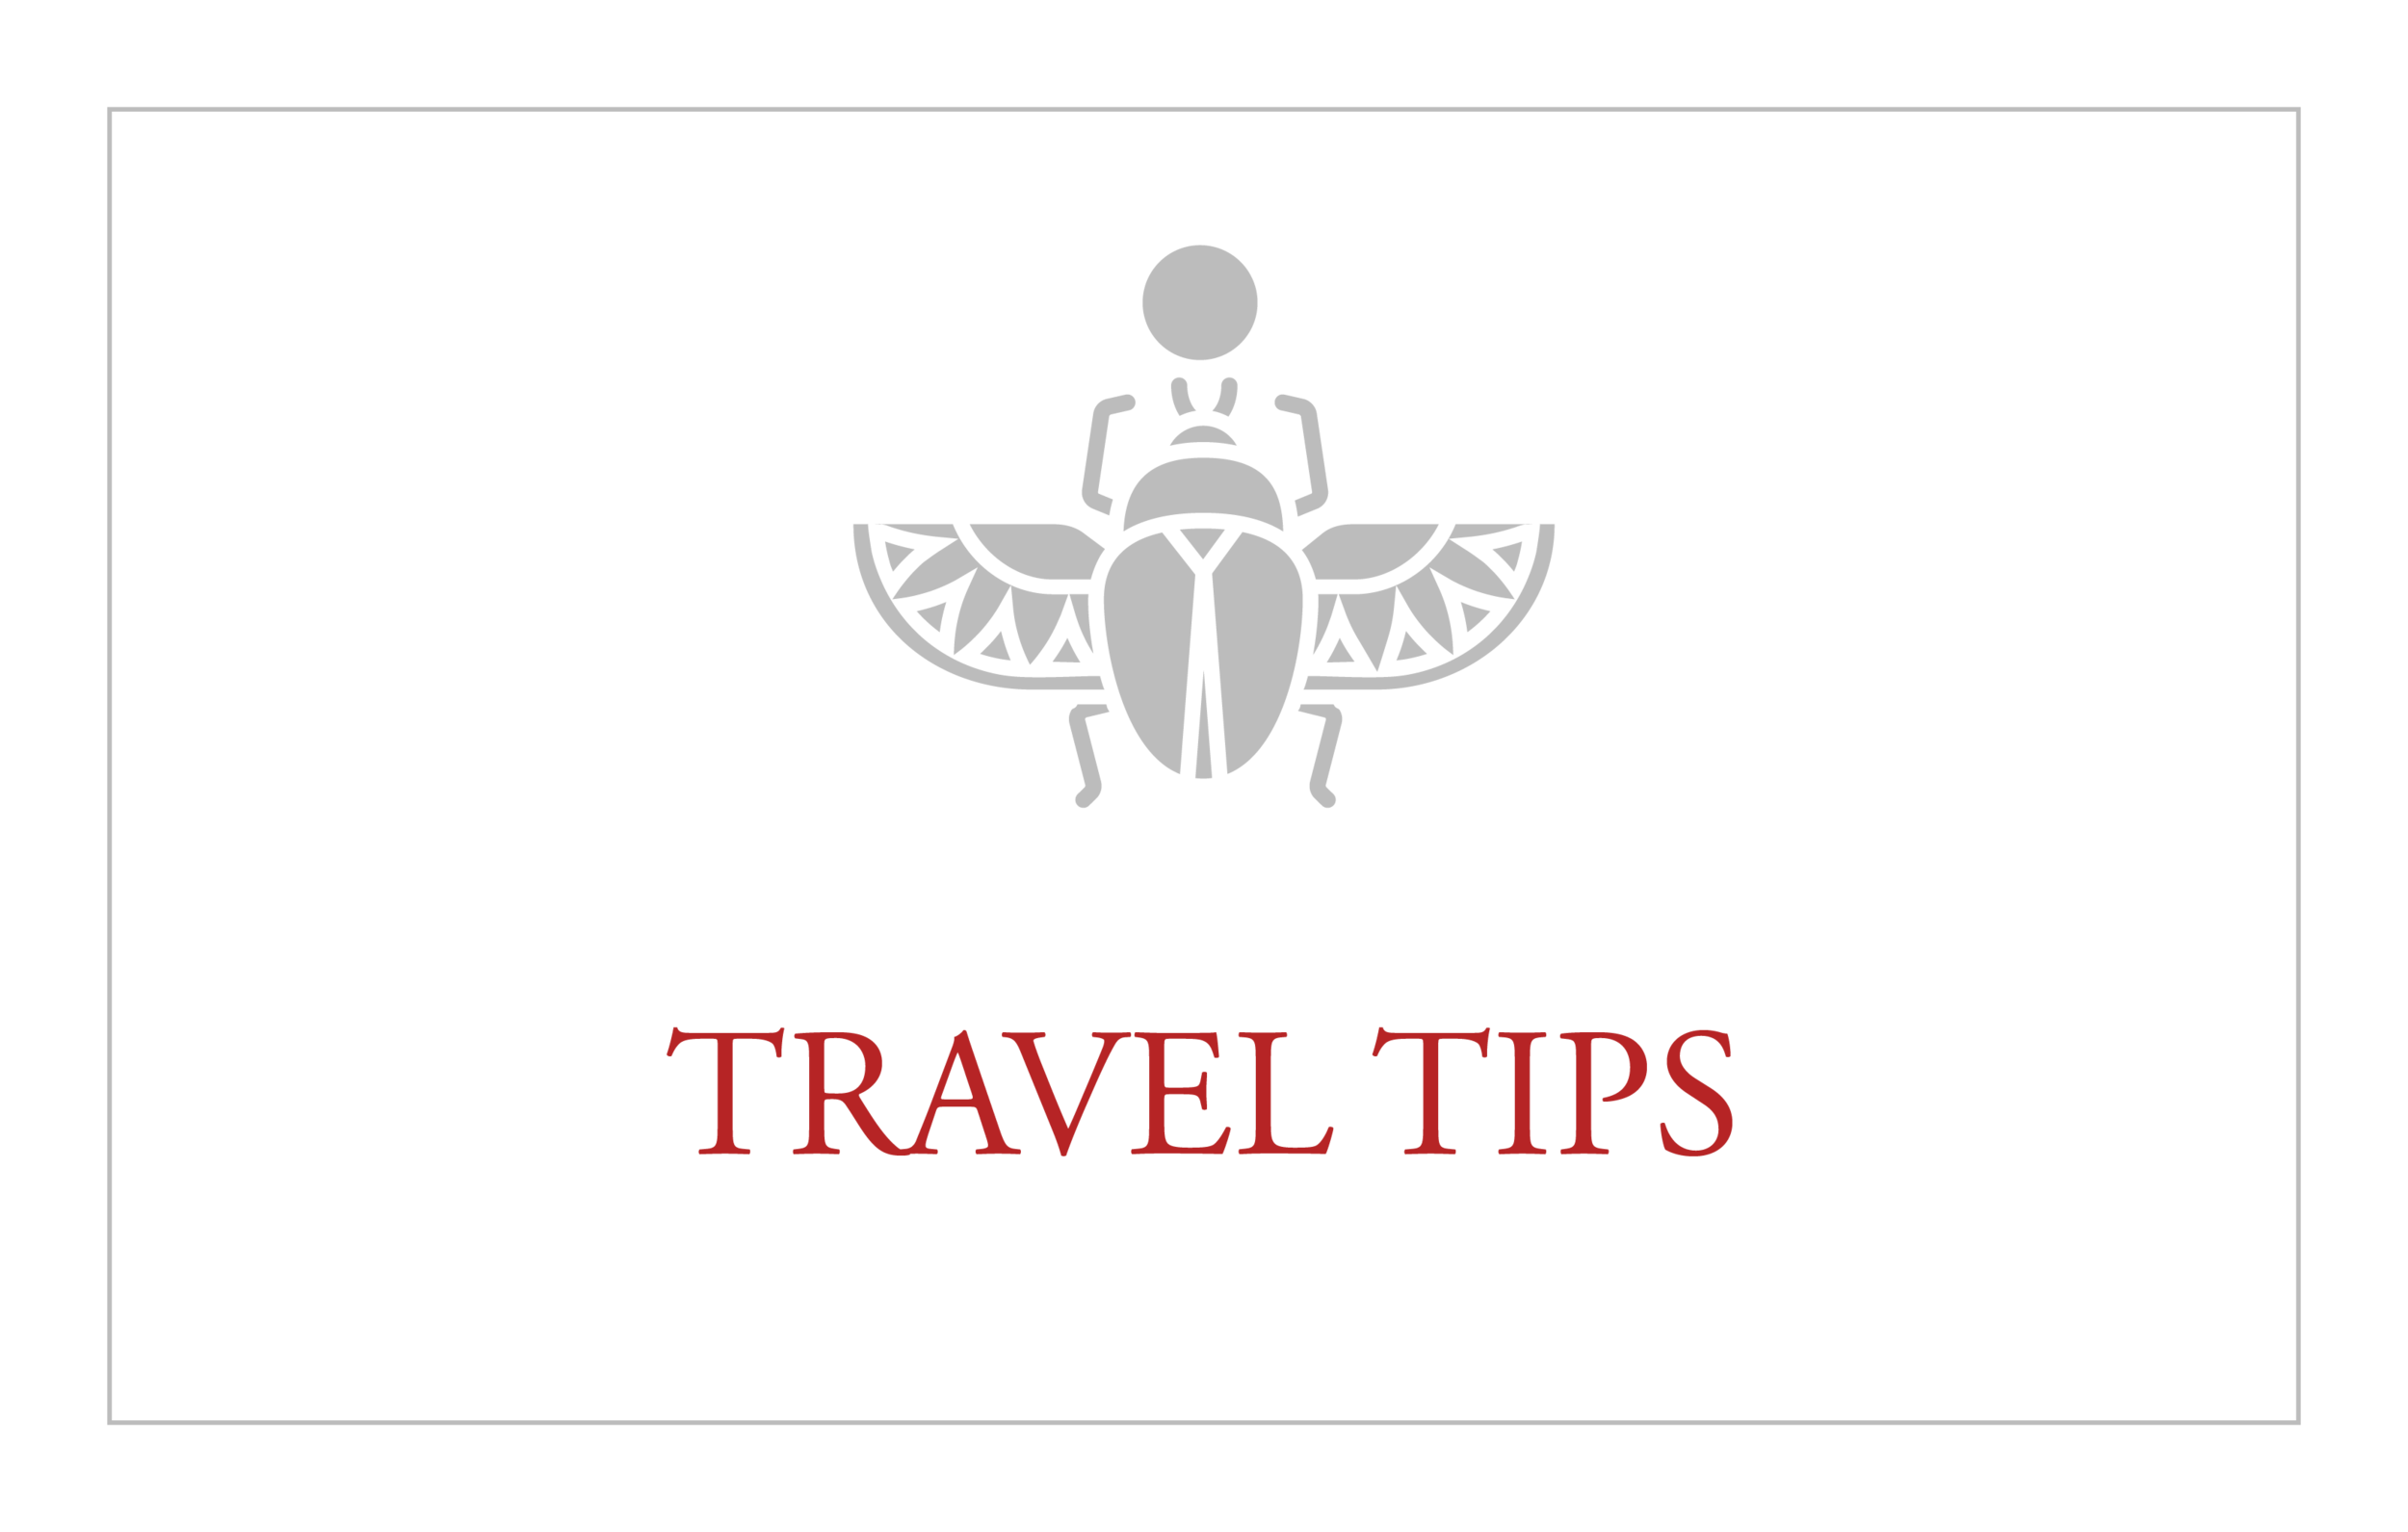 Travel-Tips-01.png